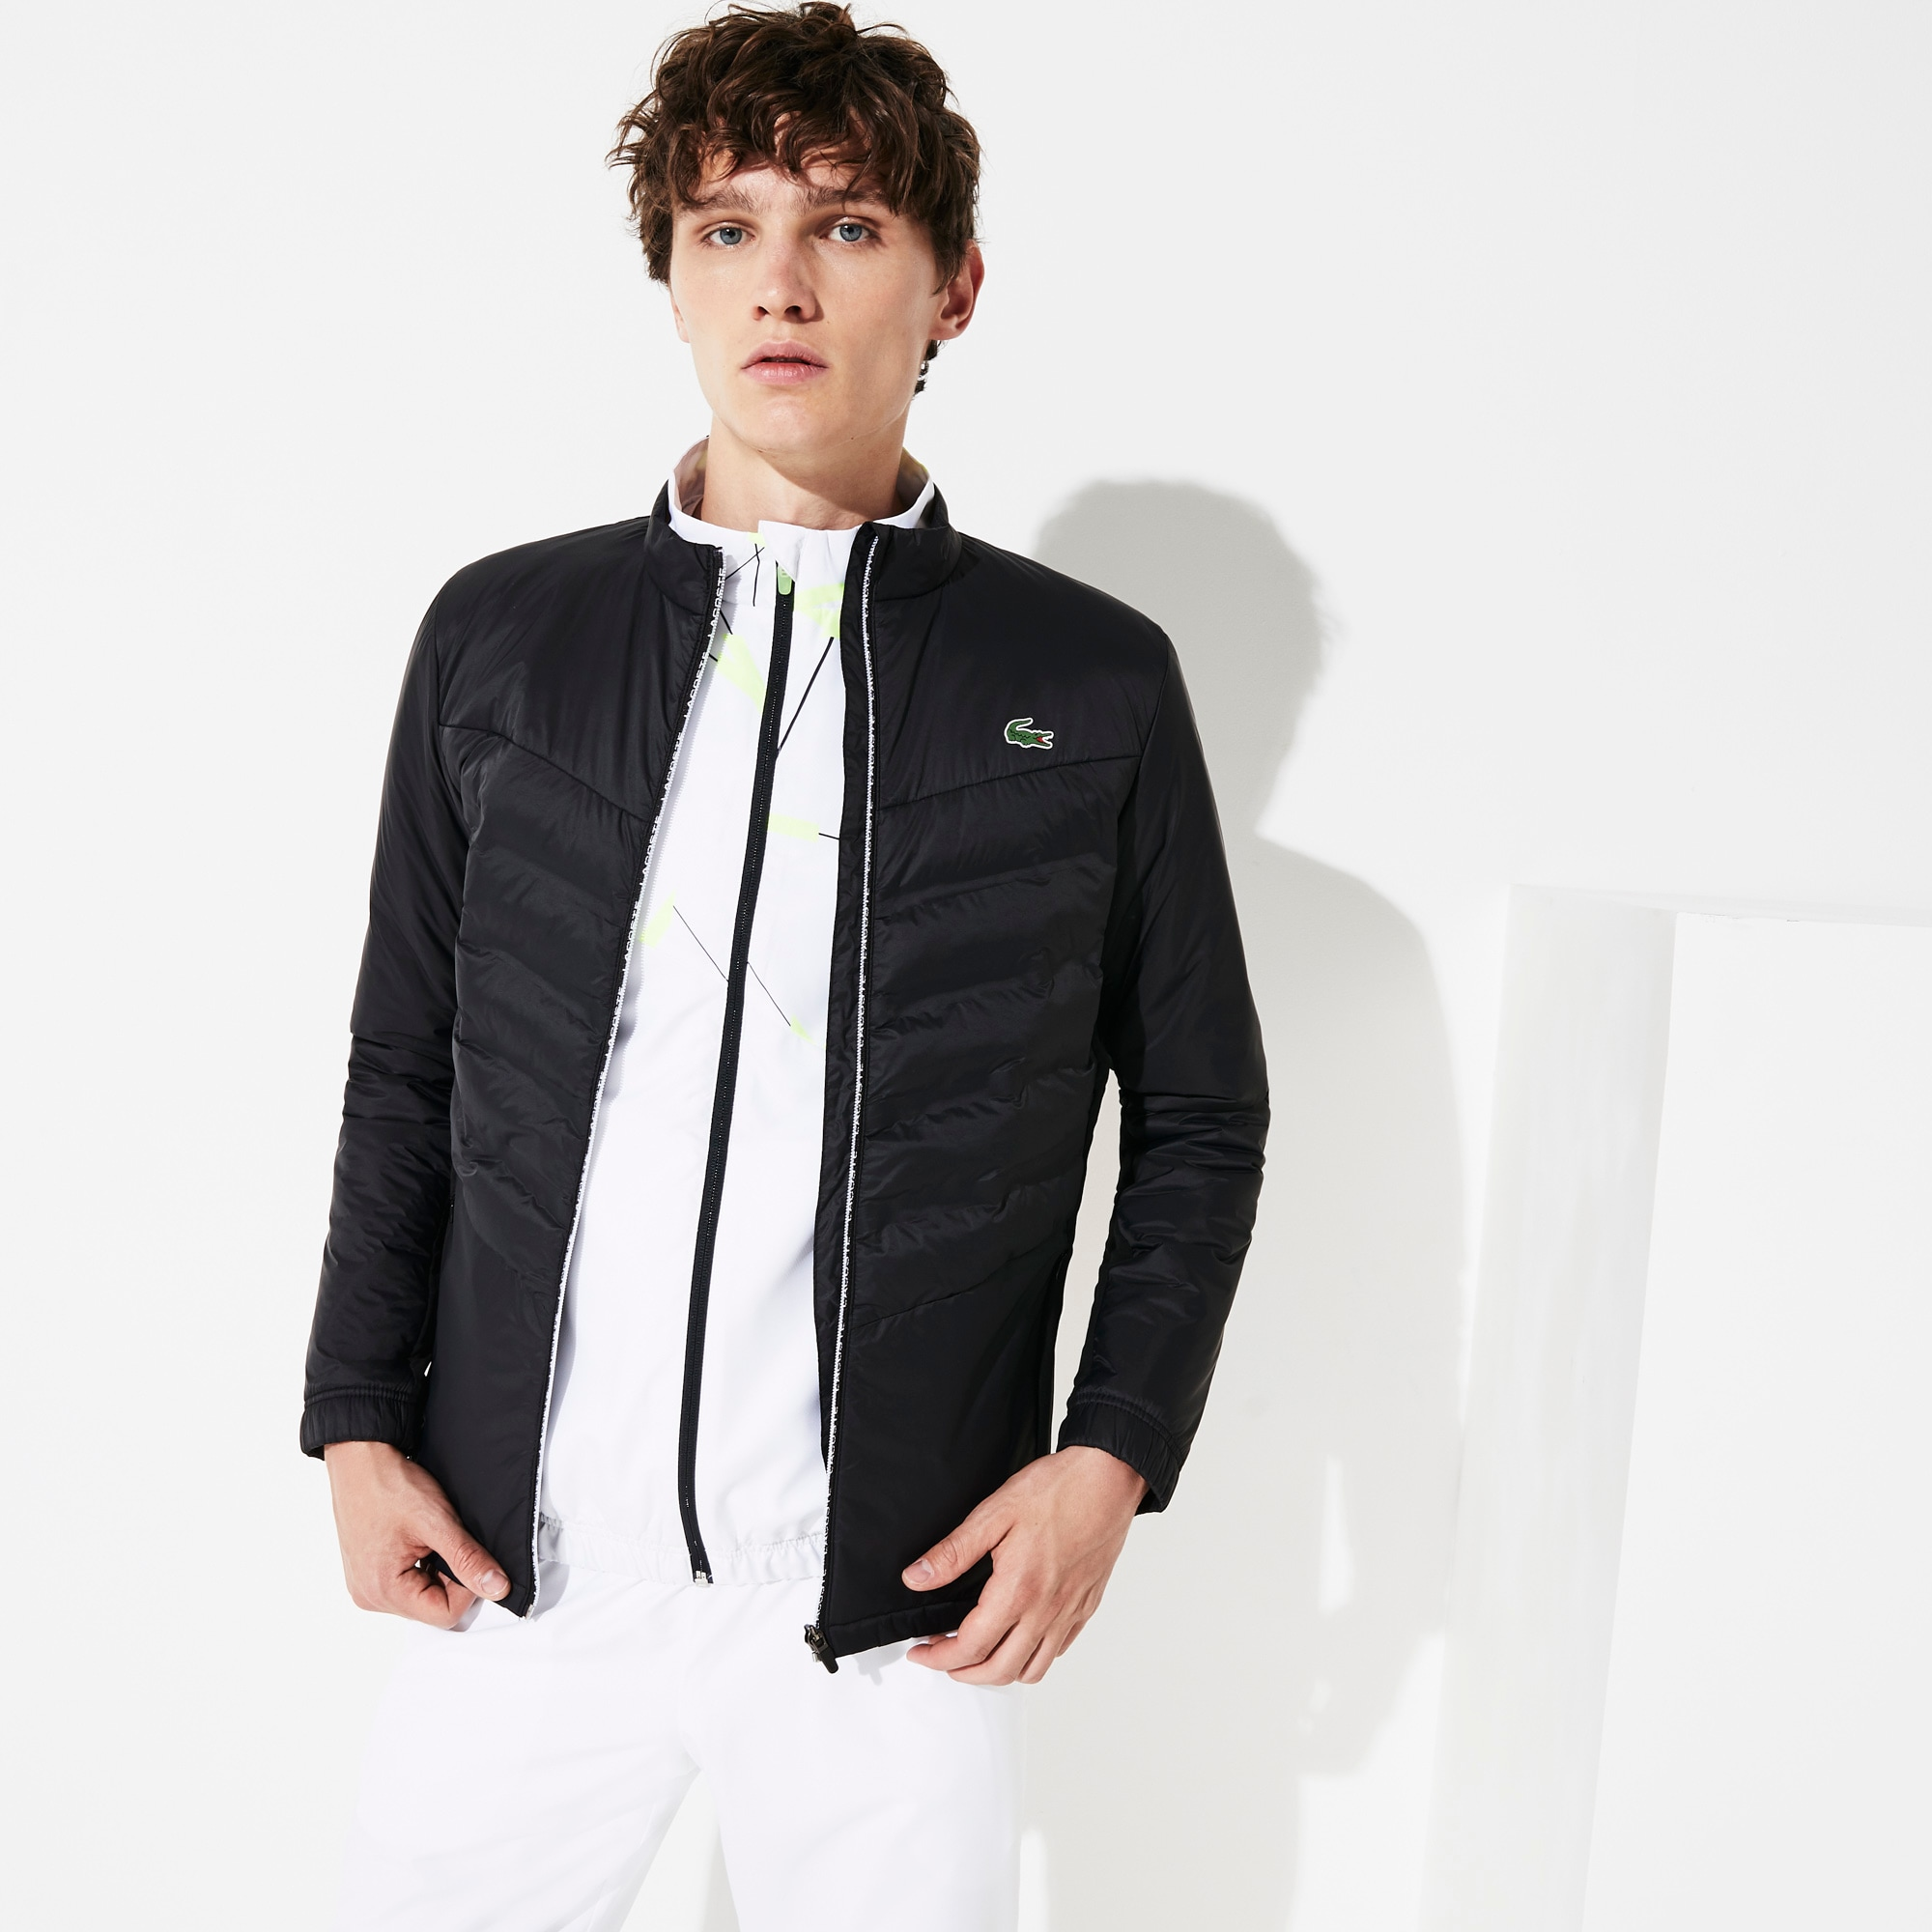 Lacoste Jackets Men's SPORT Quilted Mixed-Material Zip Tennis Jacket